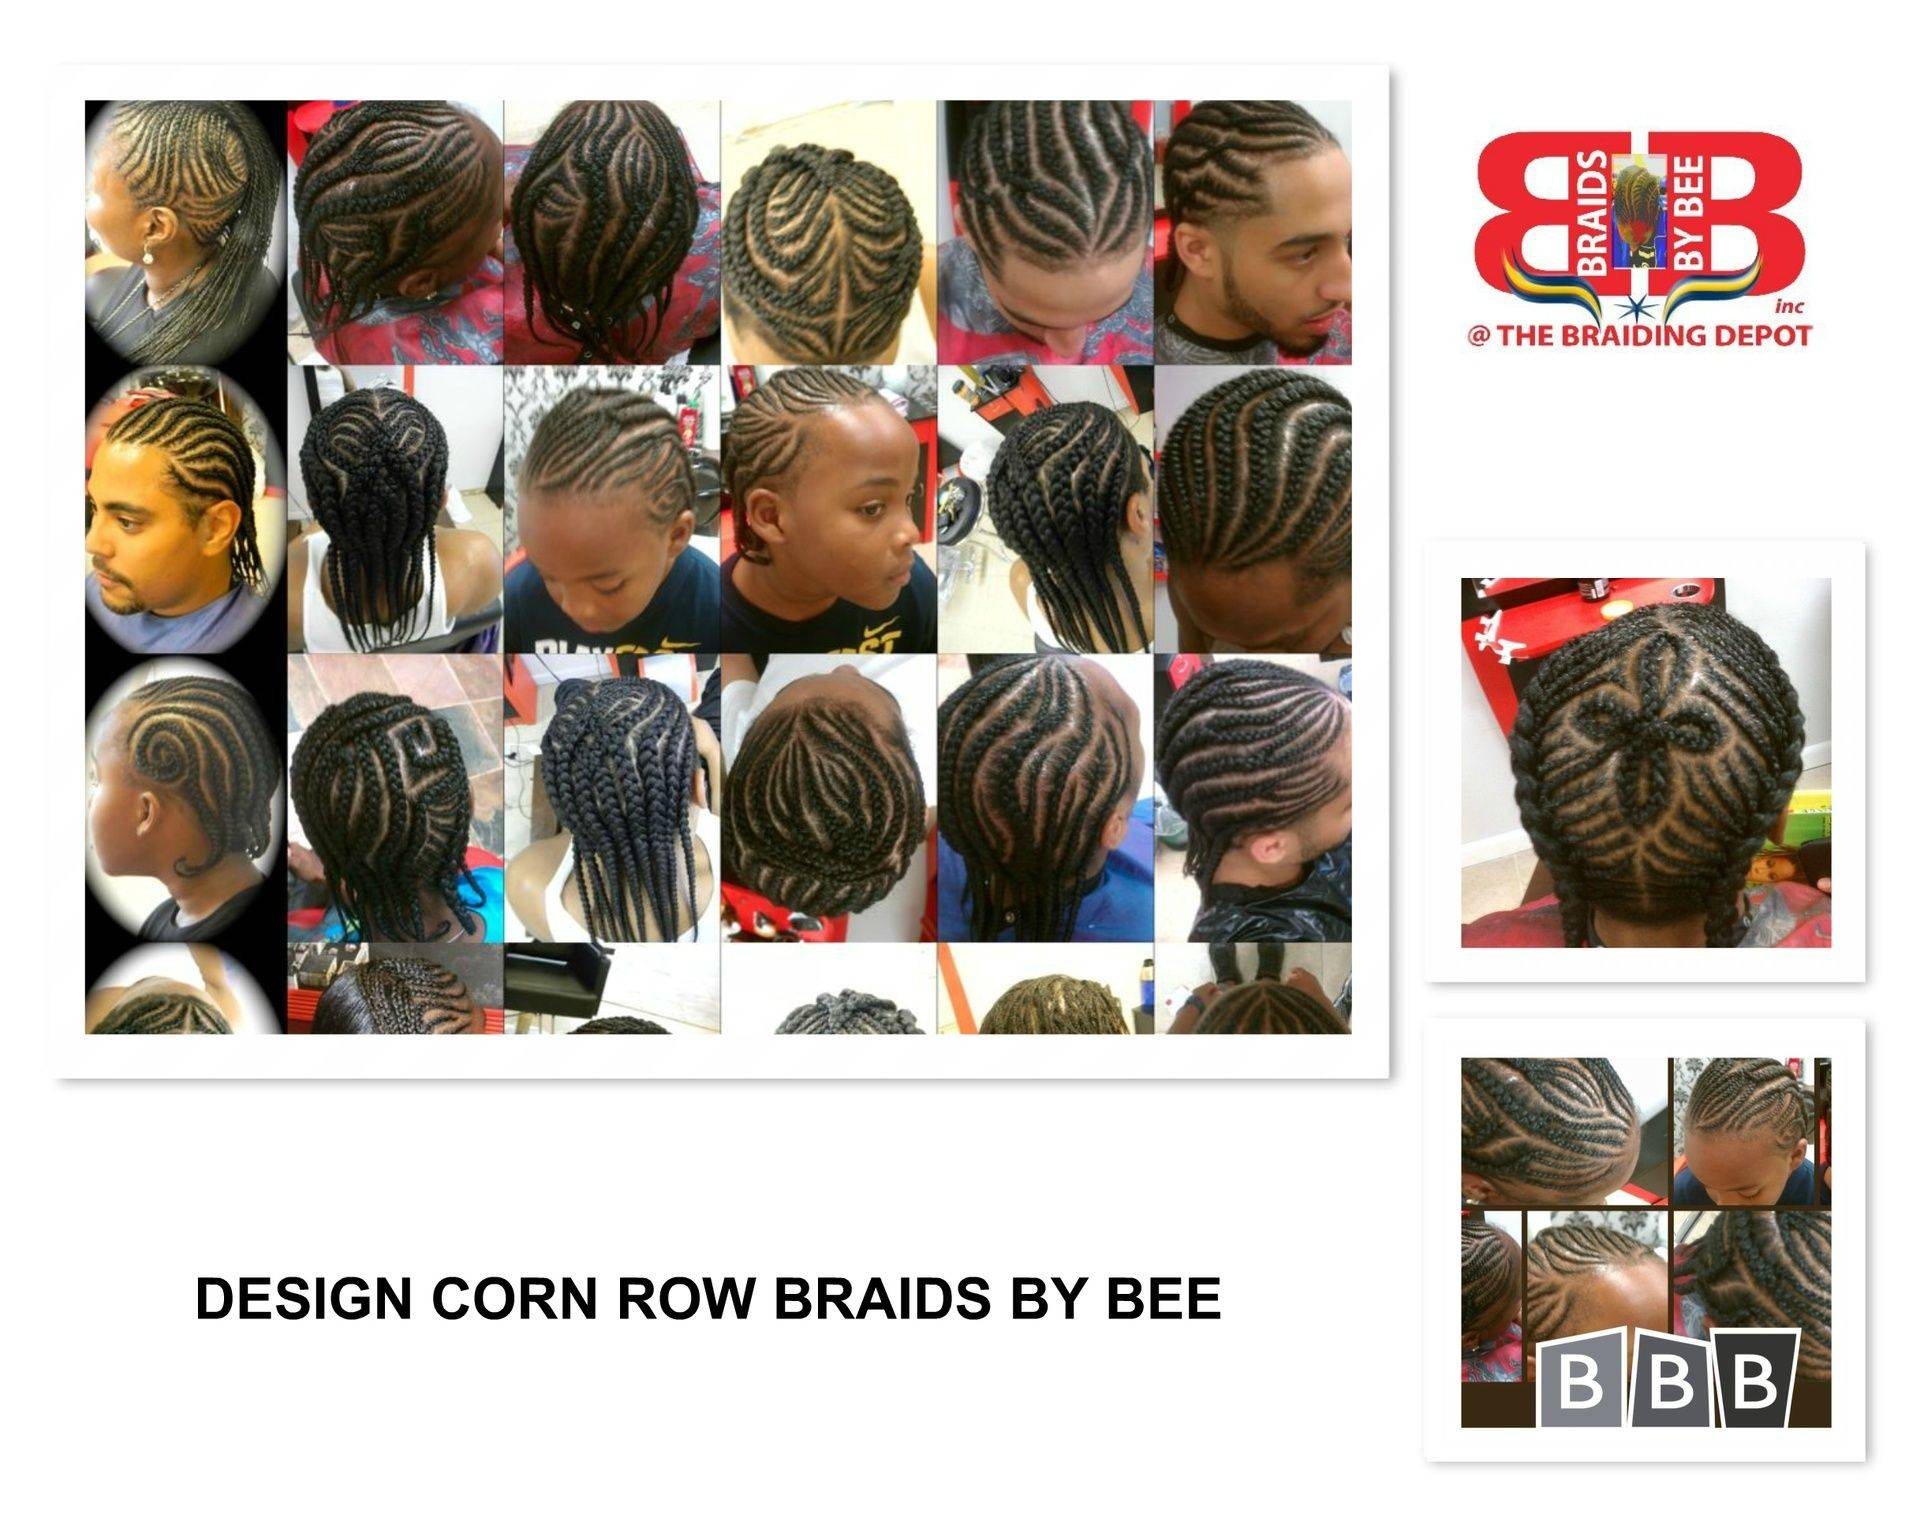 Braids by Bee posters of original Braids created by Bee herself at The Braiding Depot Inc.  You can now book online for most of these braiding services.